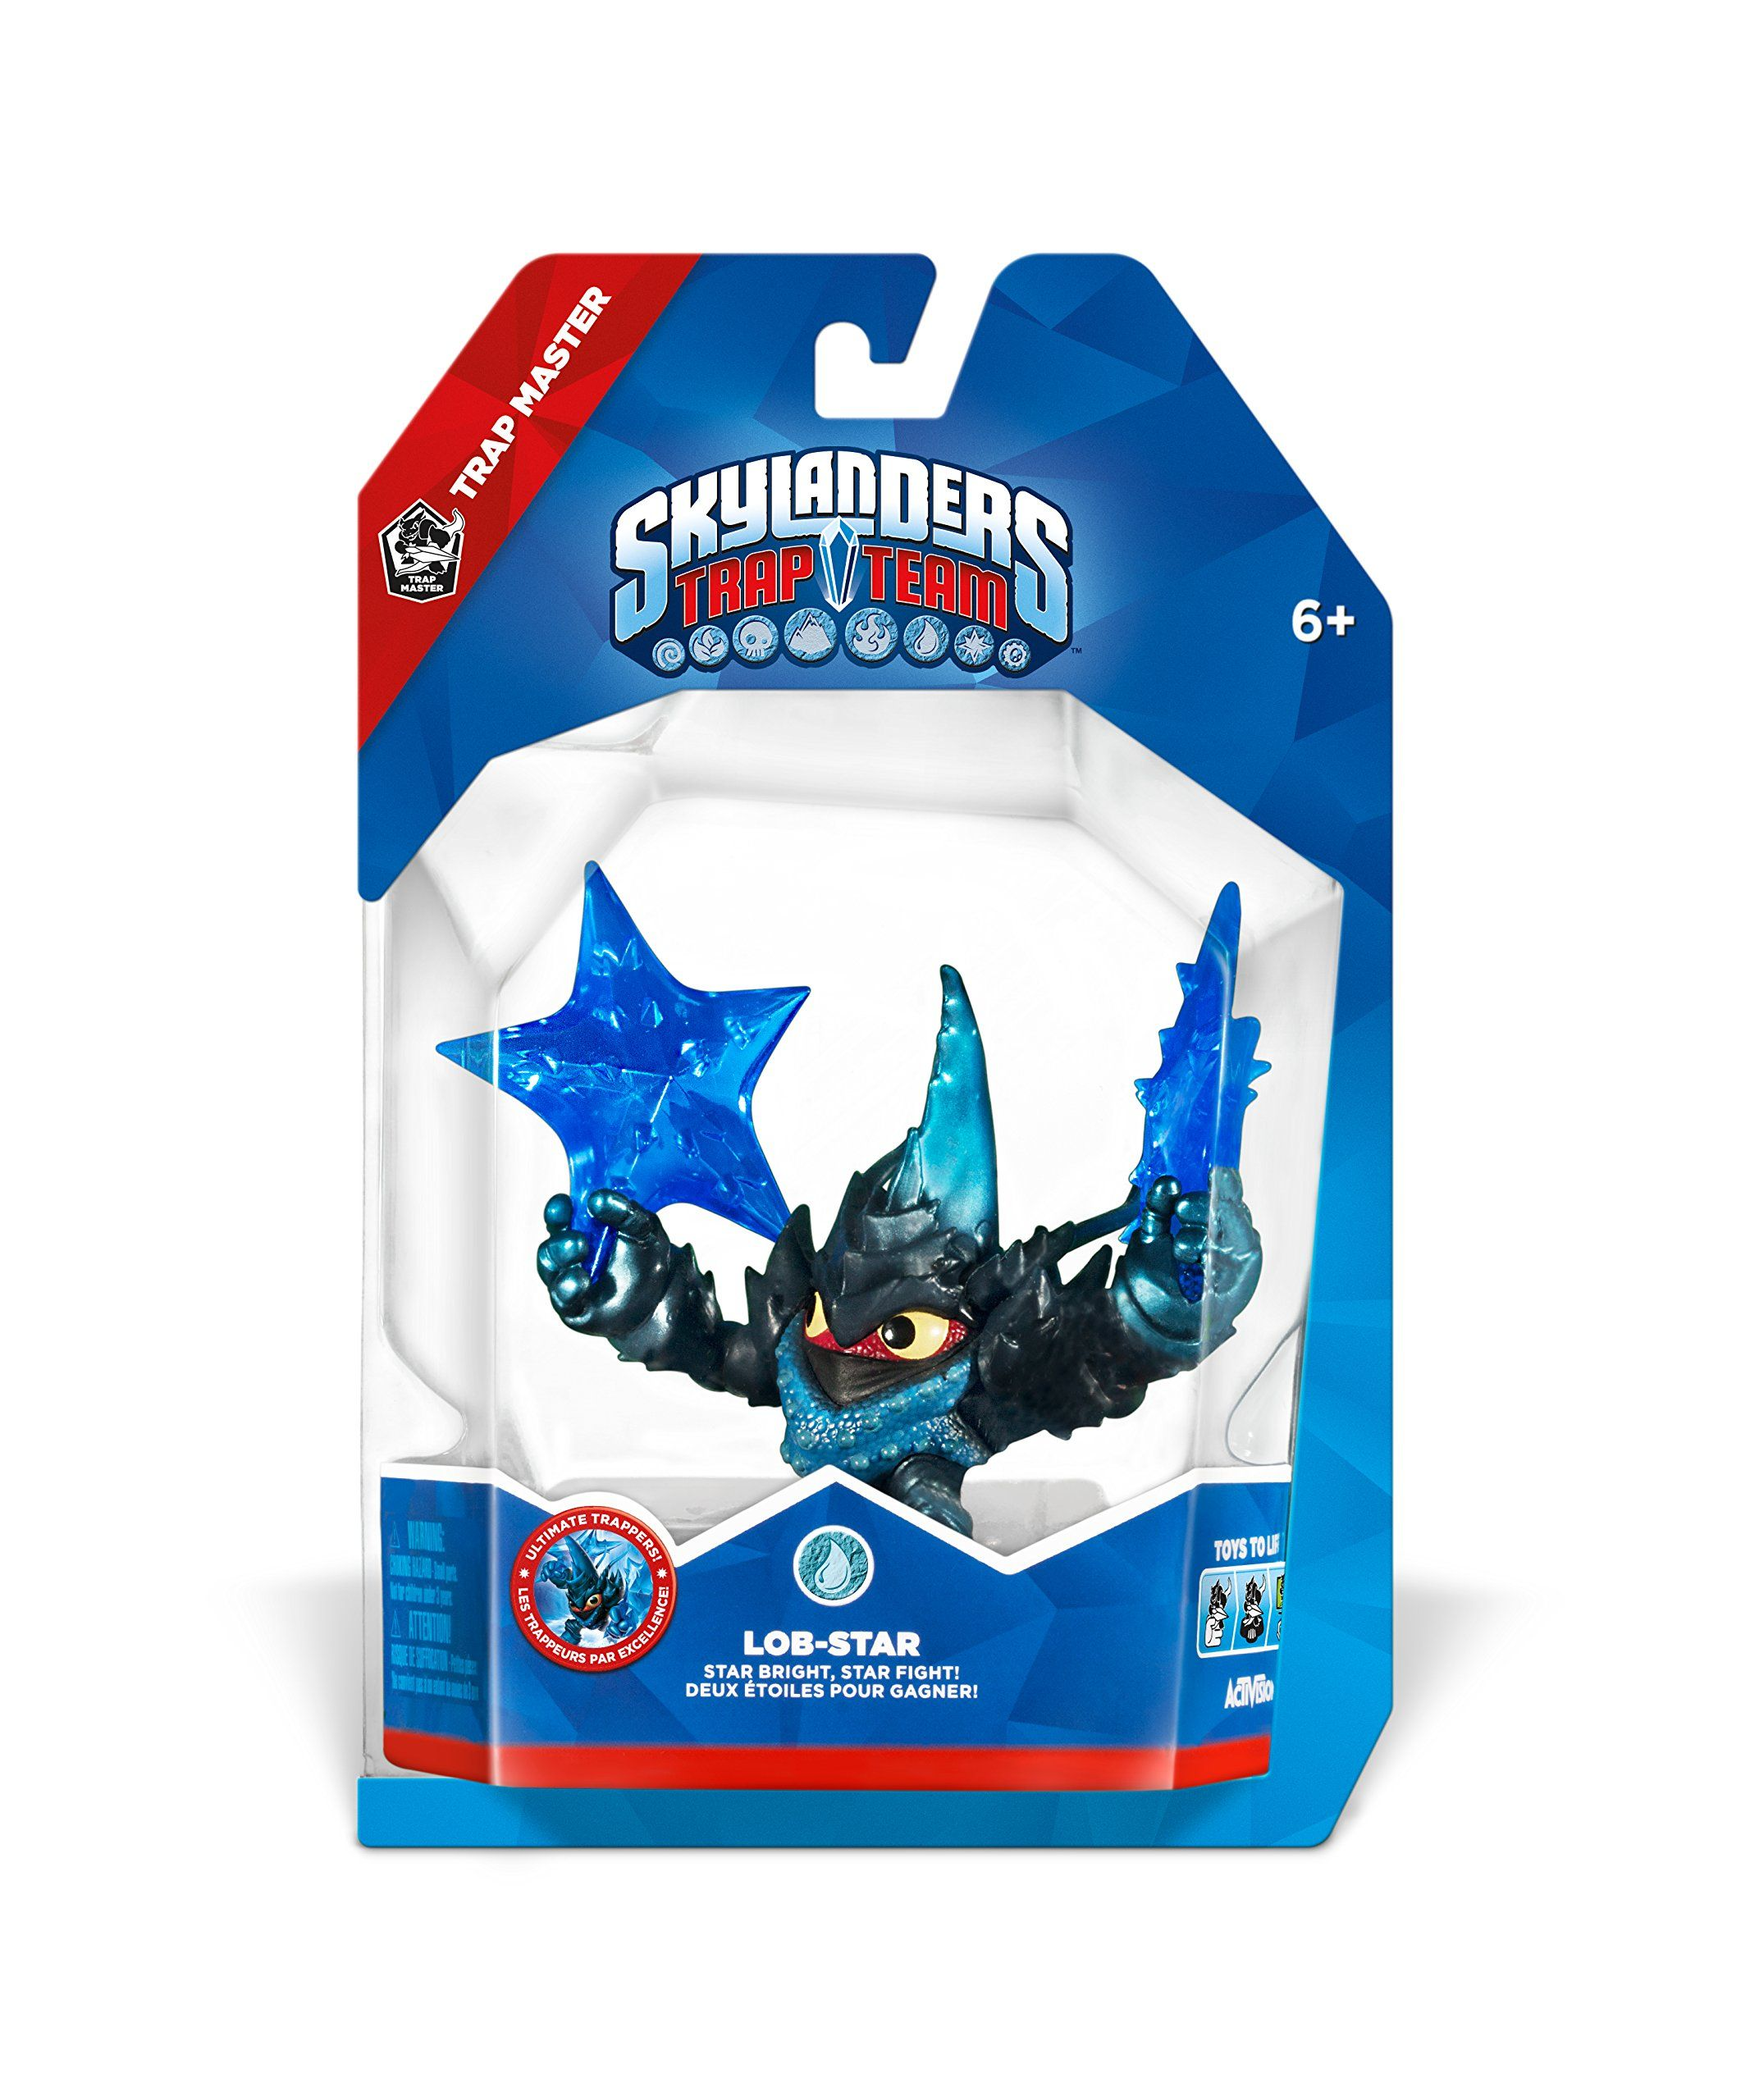 Skylanders Trap Team Trap Master Lobstar Character Pack Be Sure To Check Out This Awesome Product It Is Ama Skylanders Trap Team Skylanders Star Character